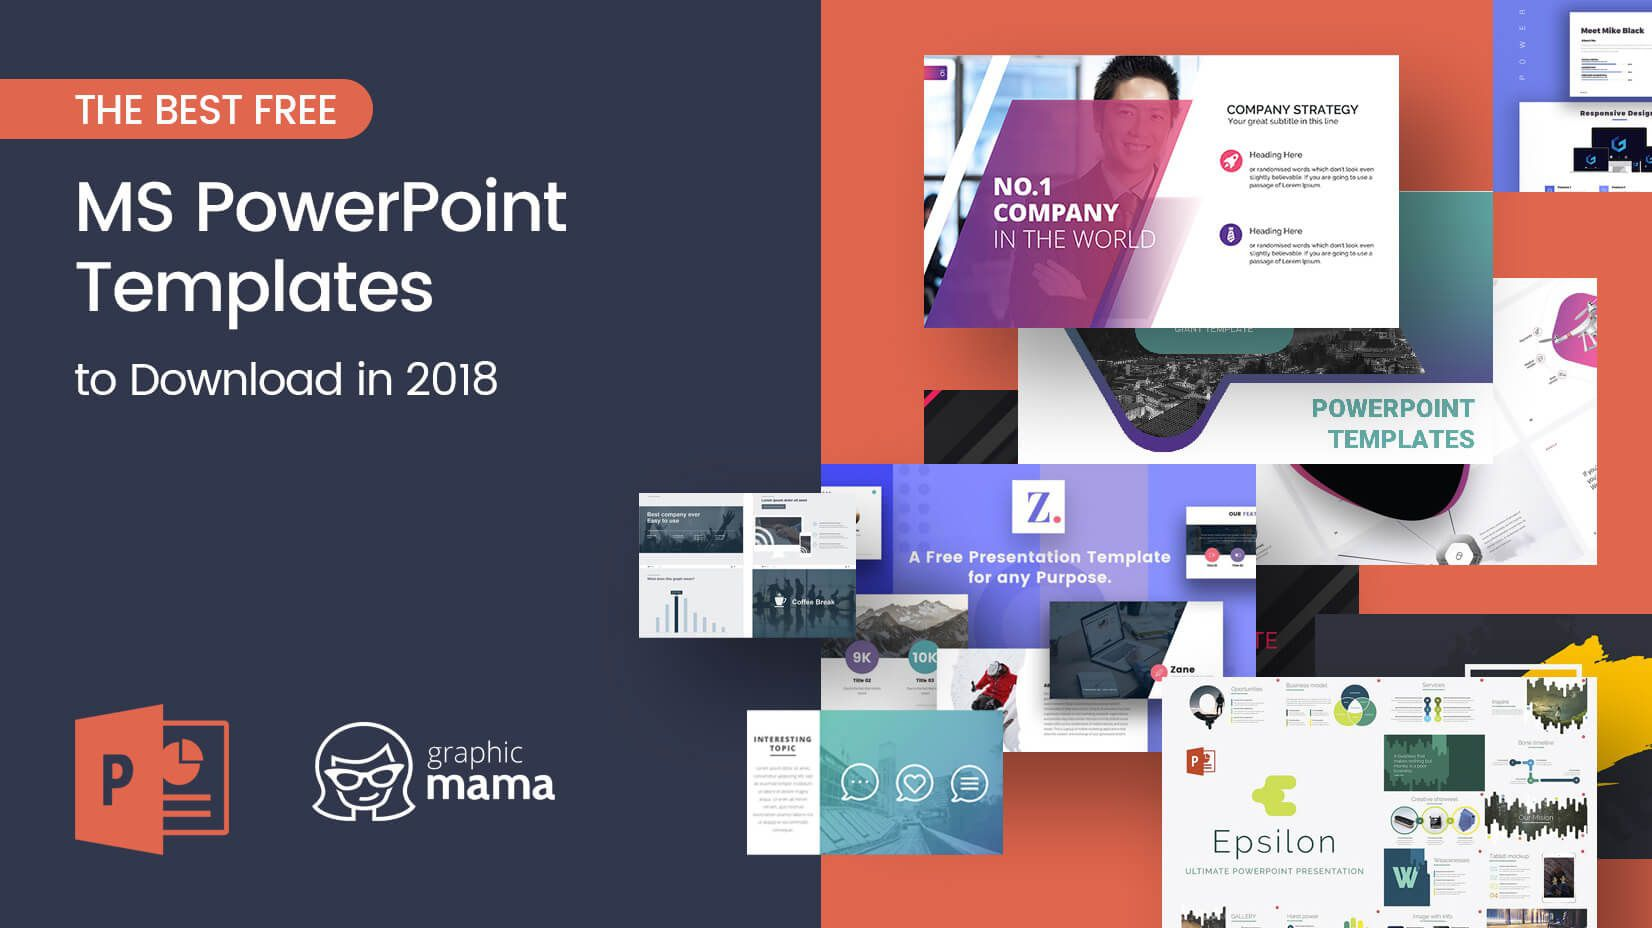 008 Exceptional Professional Ppt Template Free Download High Resolution  Microsoft 2017 Powerpoint Presentation 2019Full